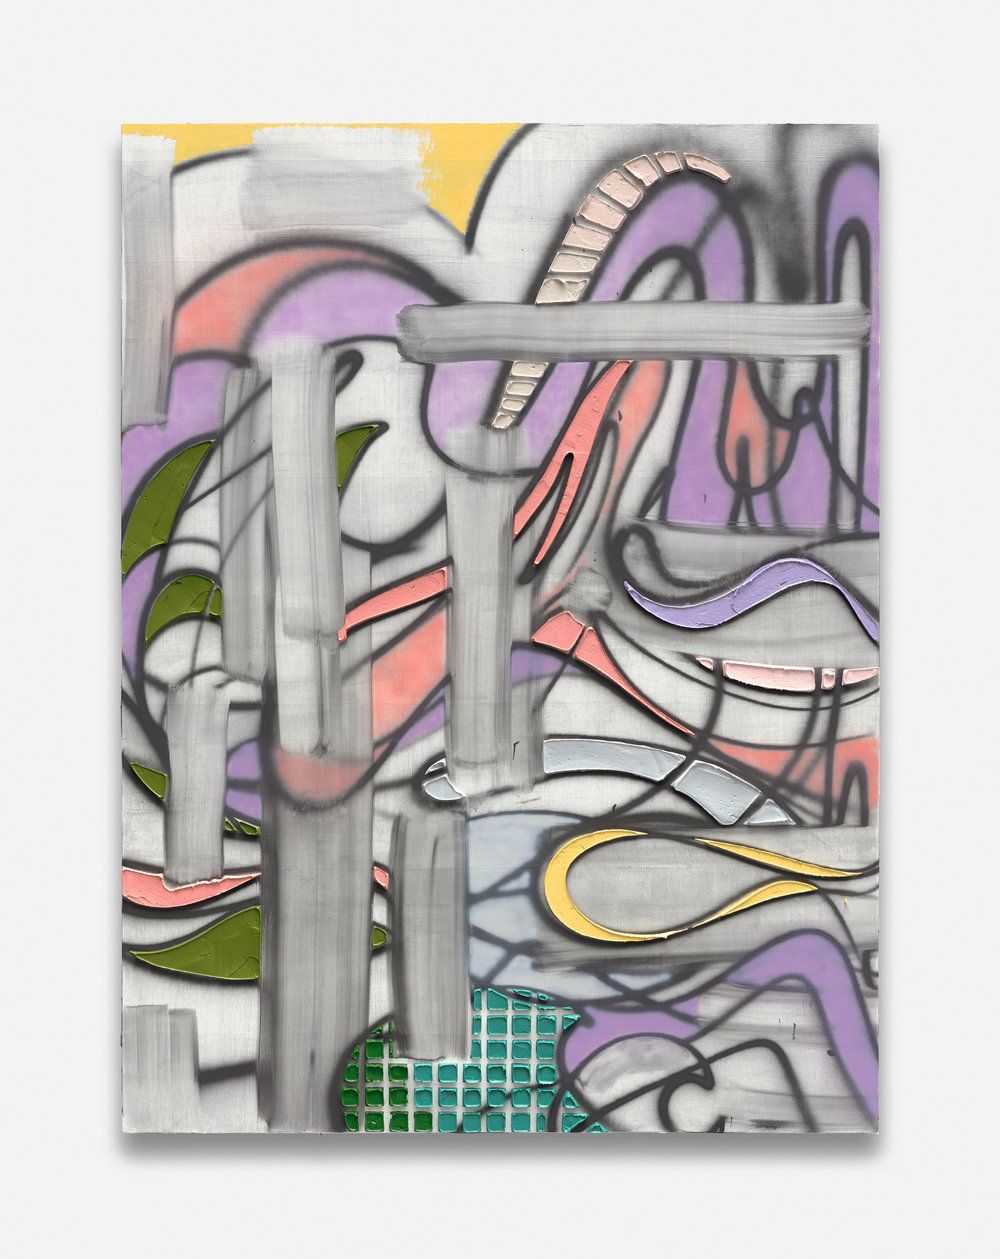 "KELTIE FERRIS. ""DRAG TRAP"" (2018). OIL AND ACRYLIC ON CANVAS IN THE ARTIST'S FRAME. TRIPTYCH; EACH PANEL: 80 X 60 IN. © KELTIE FERRIS. COURTESY OF THE ARTIST AND MITCHELL-INNES & NASH, NEW YORK."